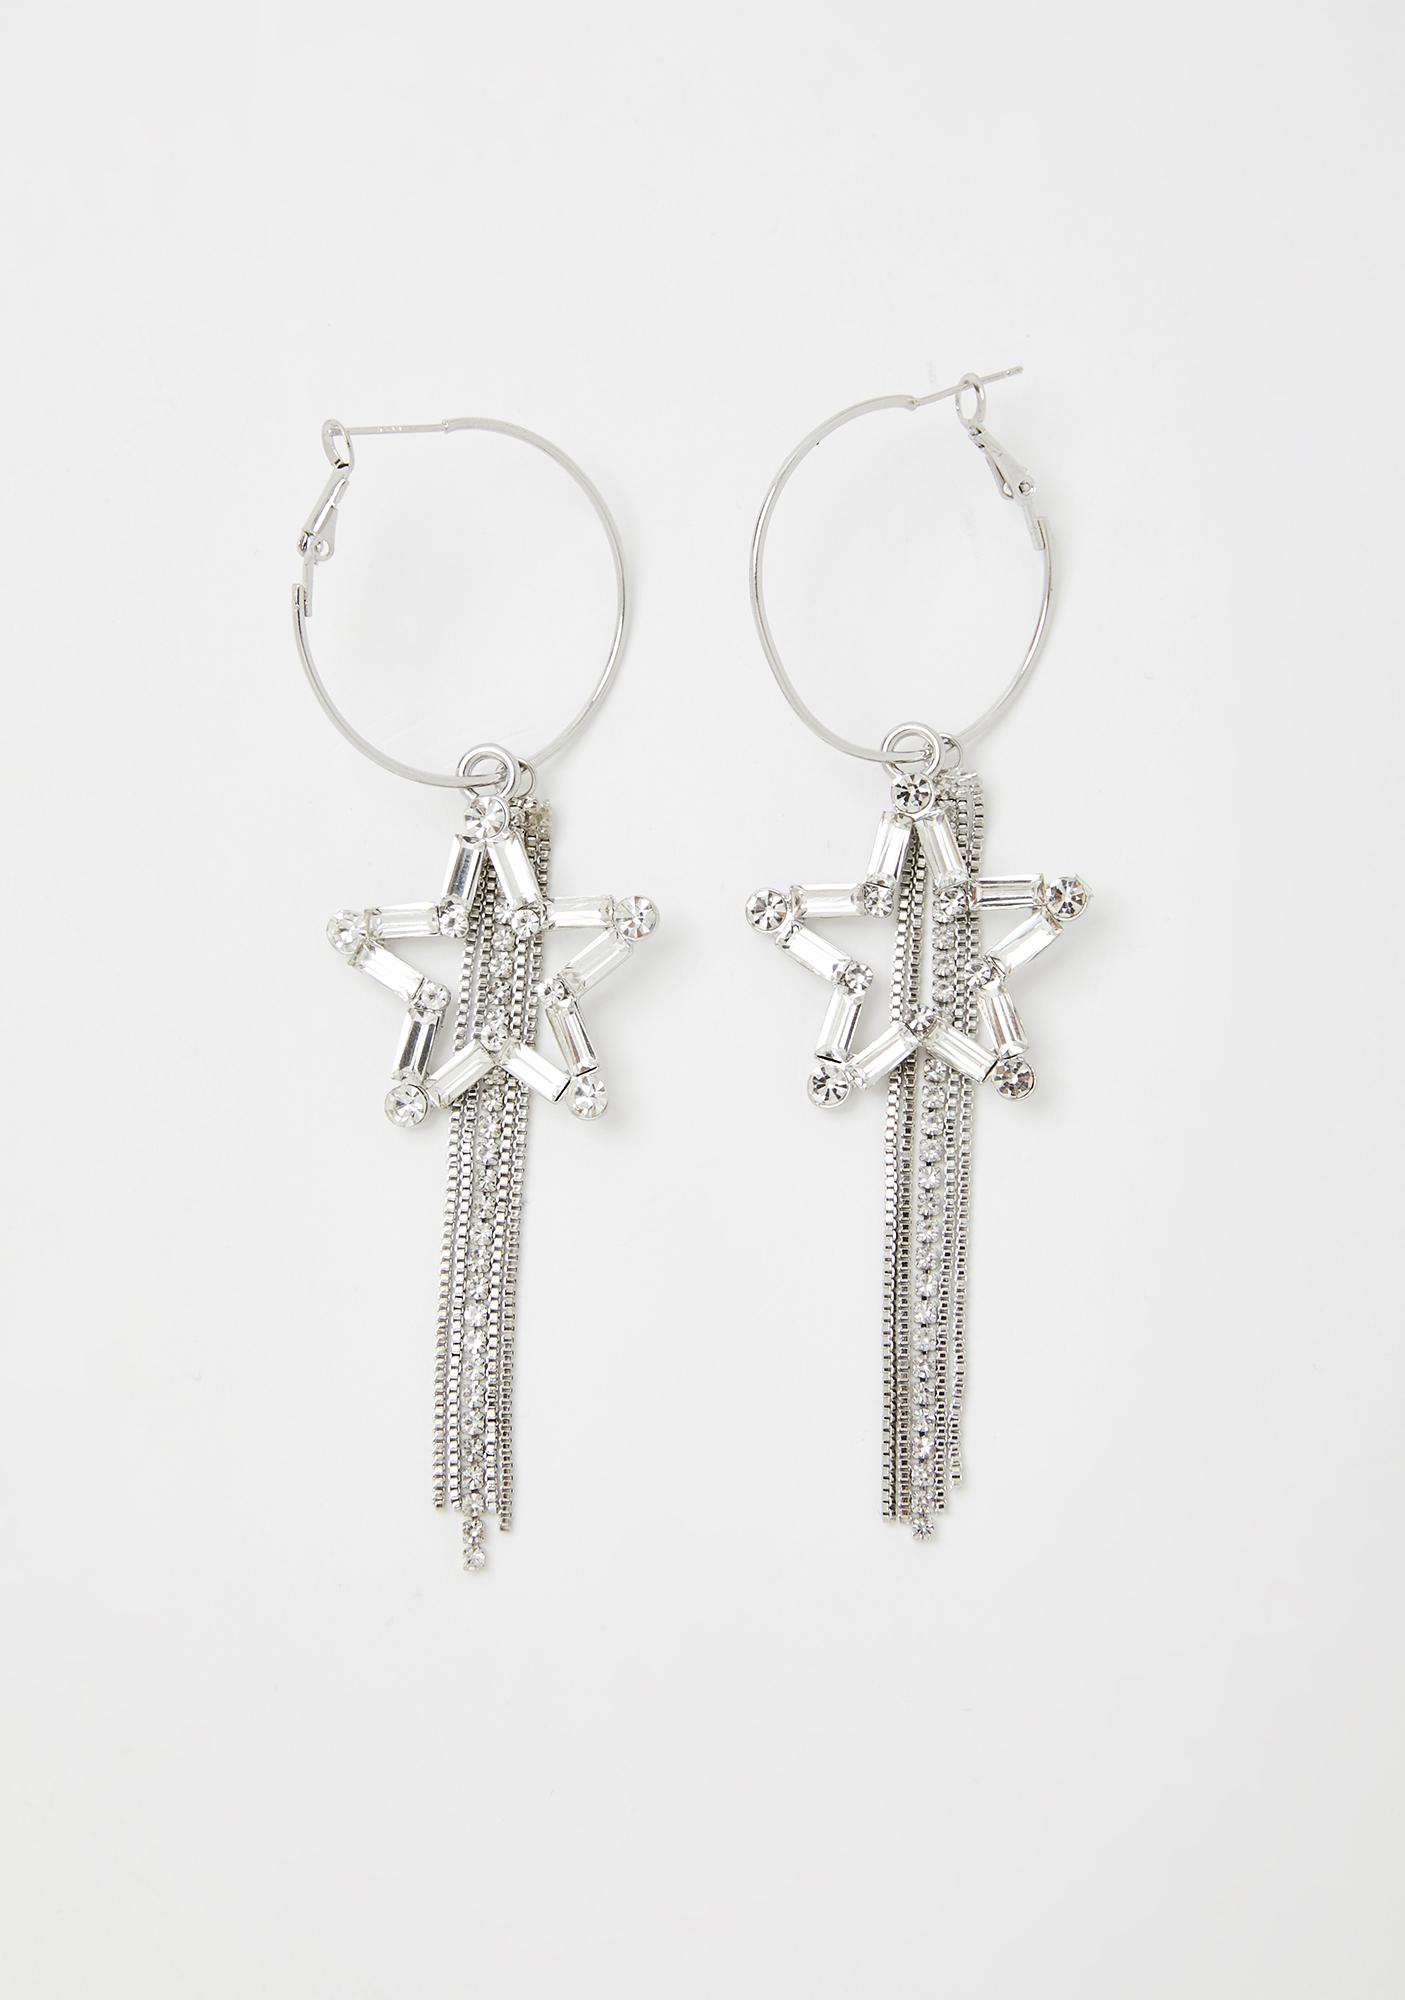 All My Wishes Star Earrings